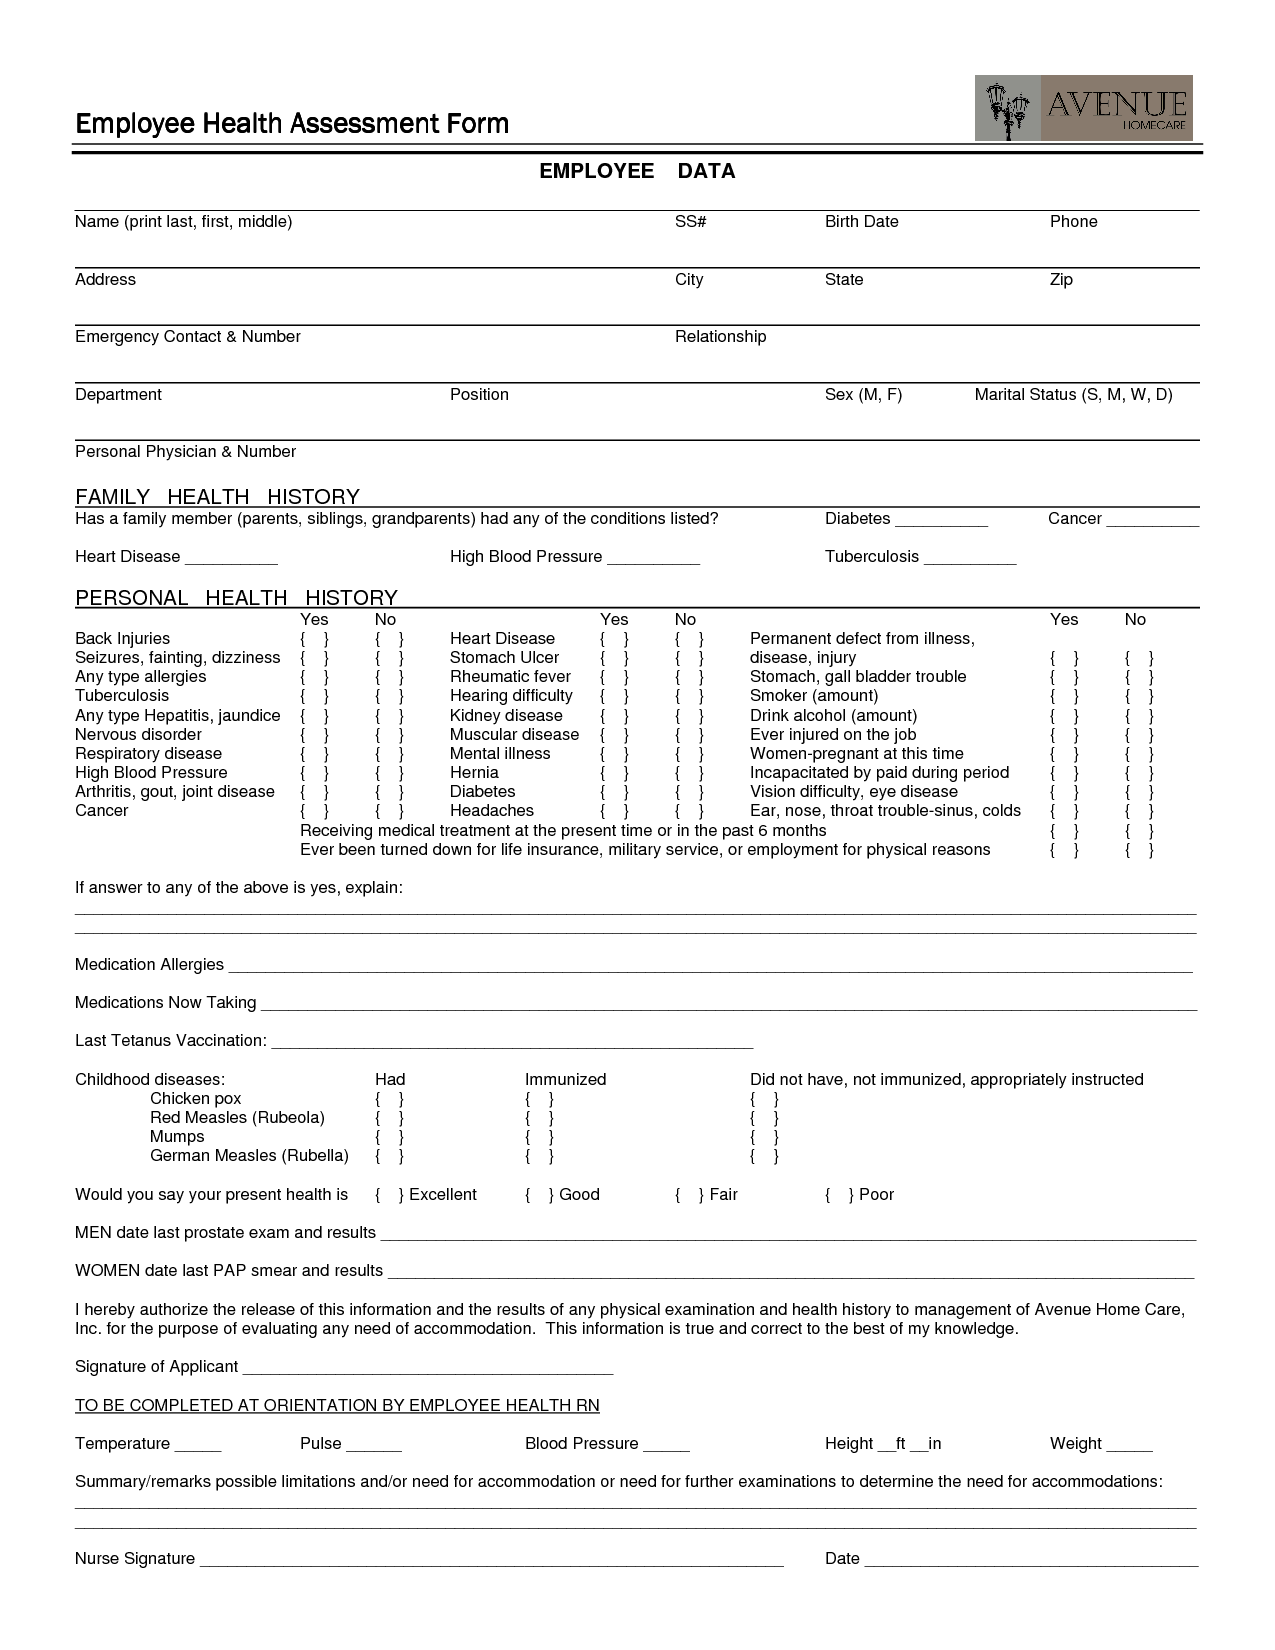 Employee Health Assessment Form Employment Health